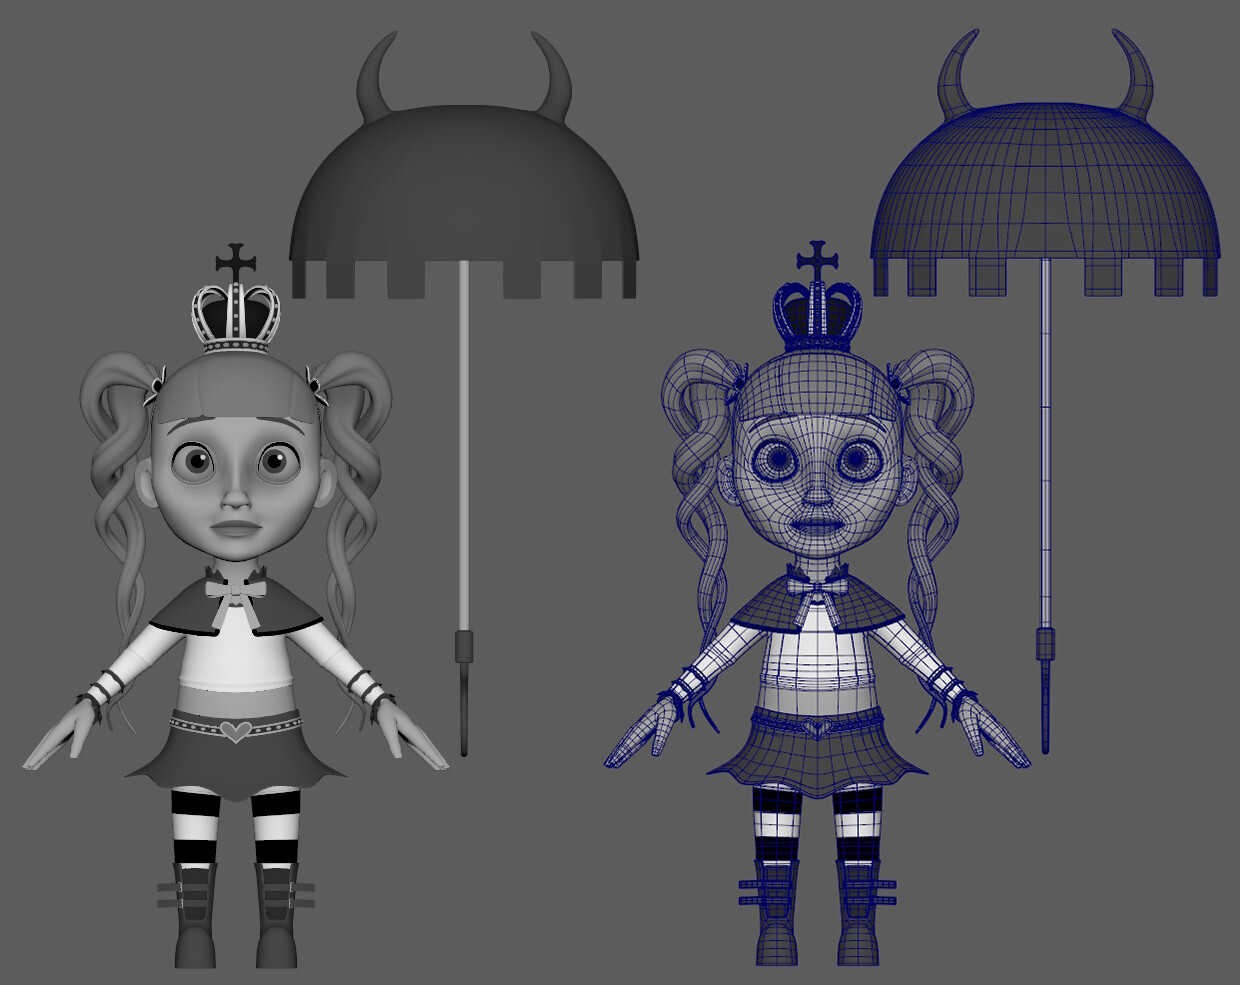 Front view with wireframe comparison